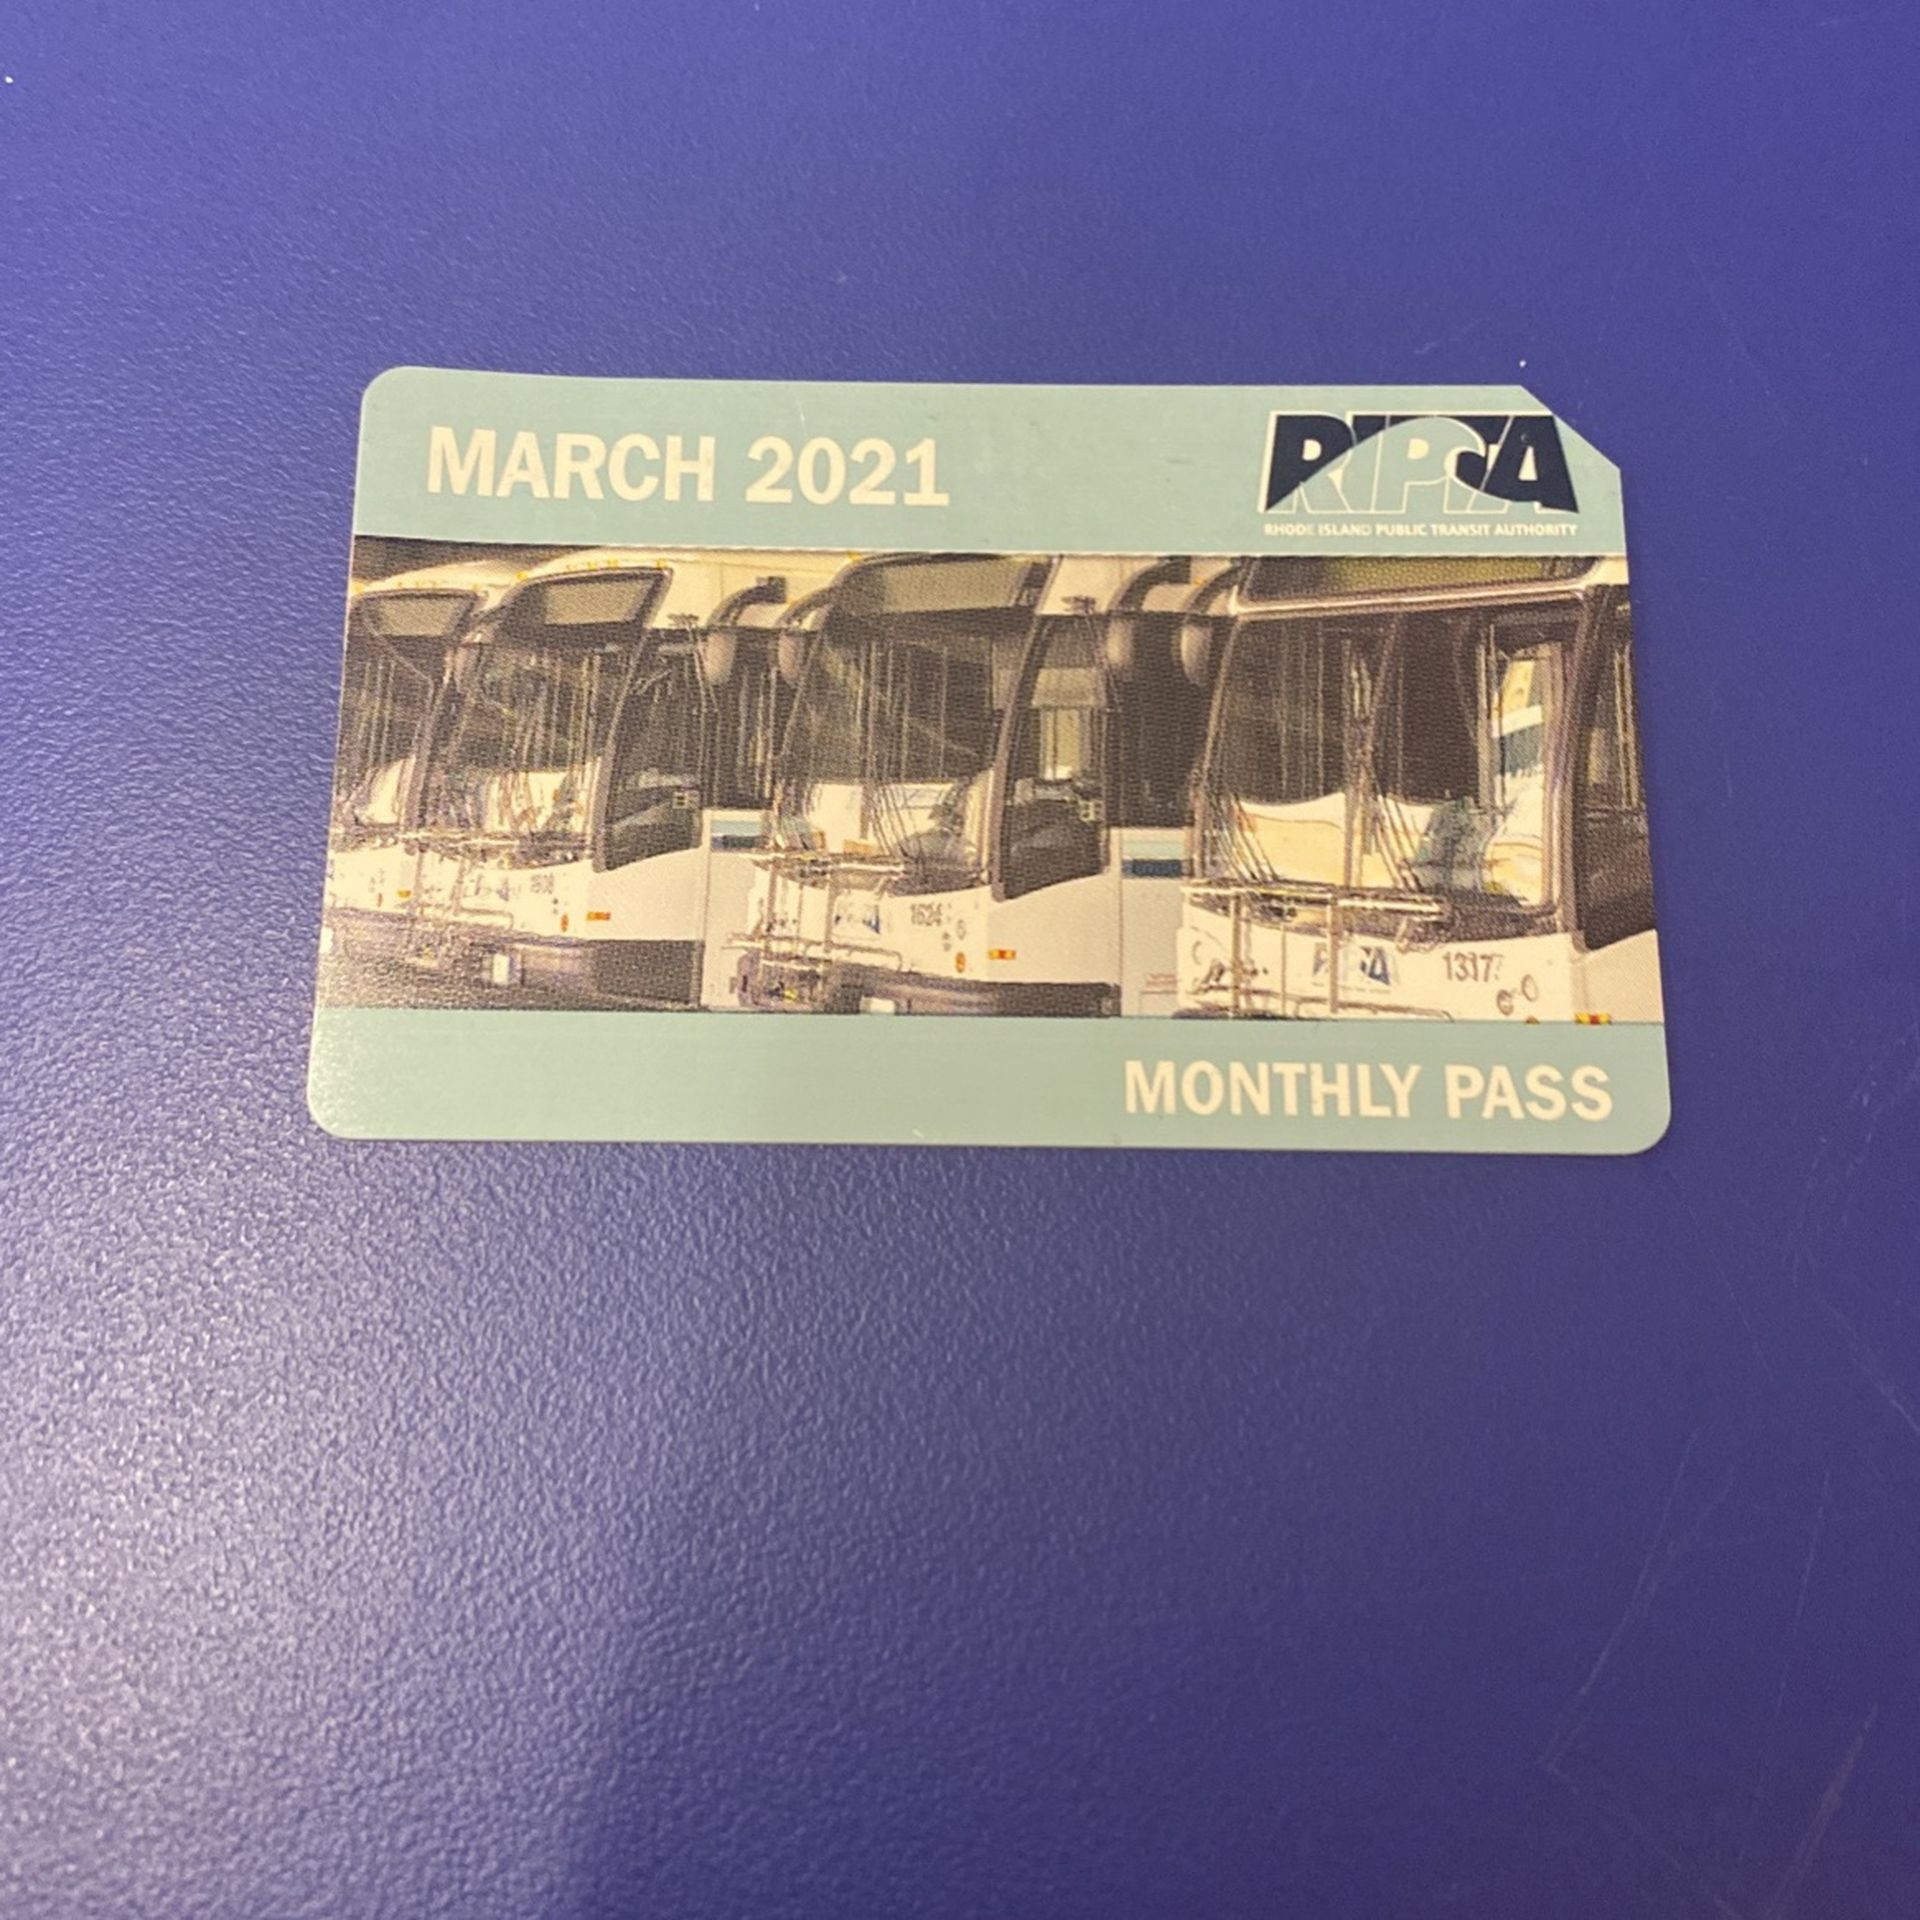 March 2021 Monthly Buss Pass